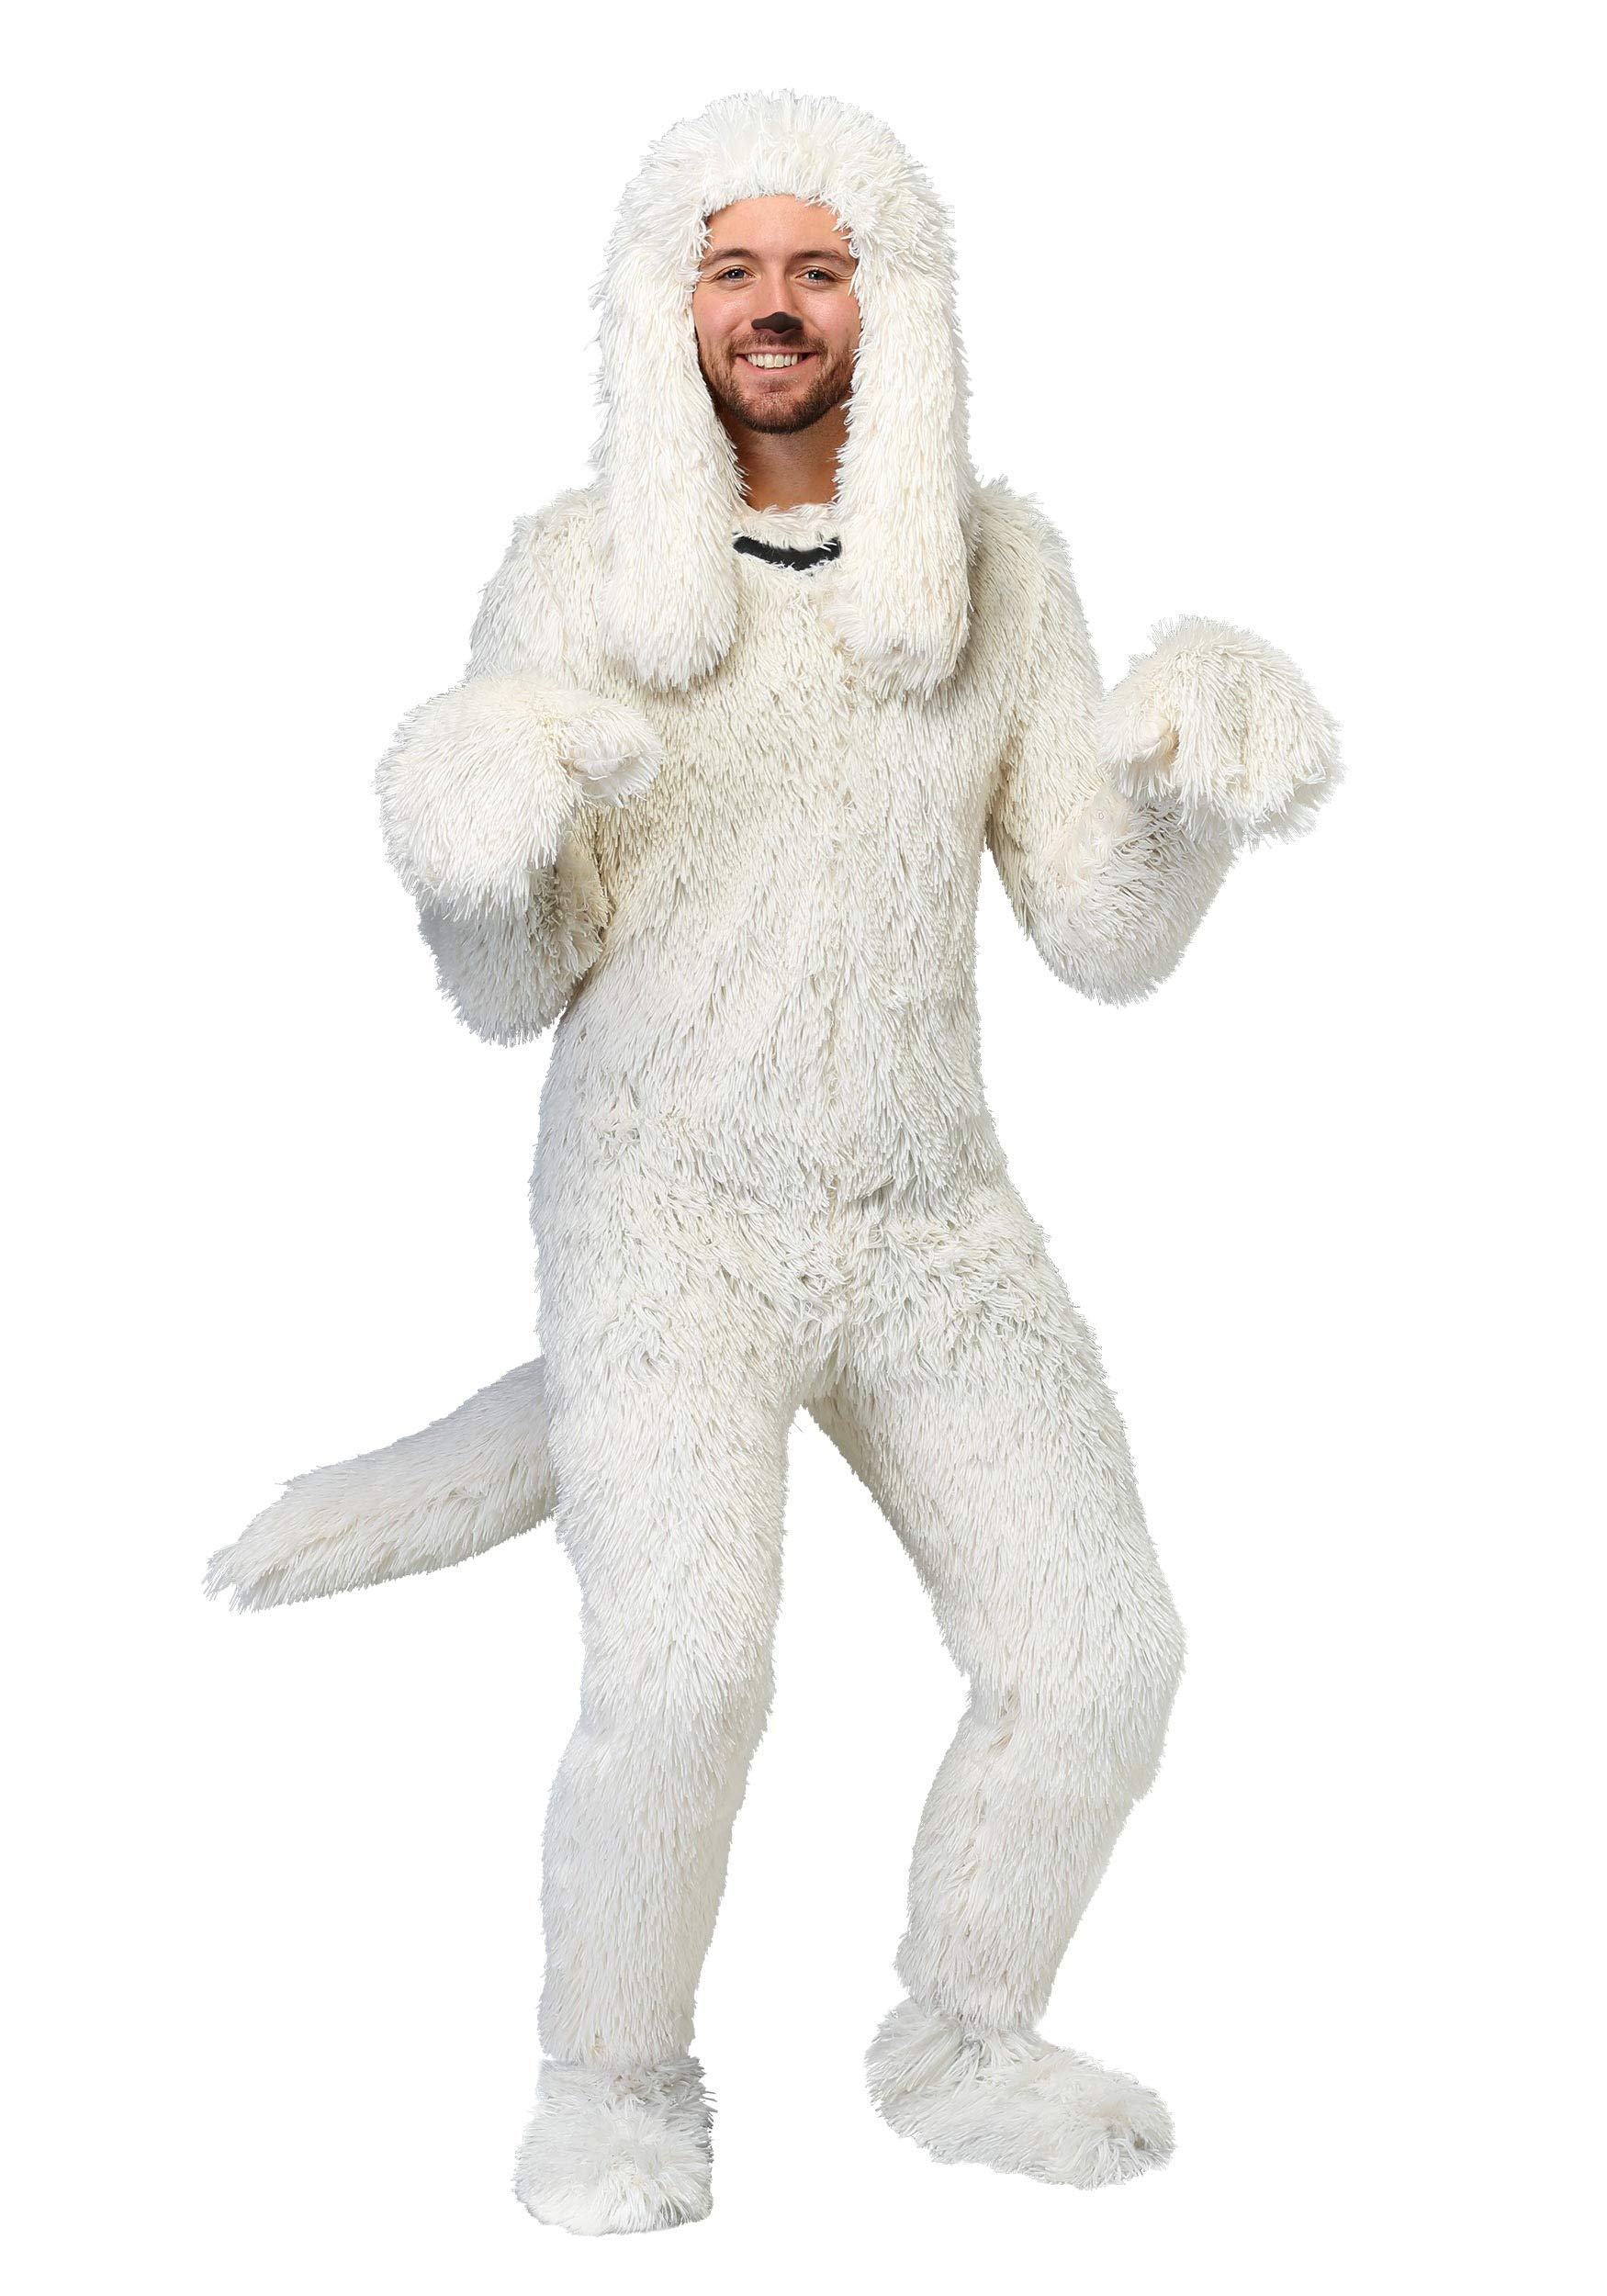 Shaggy Sheep Dog Adult Costume - M White by Fun Costumes